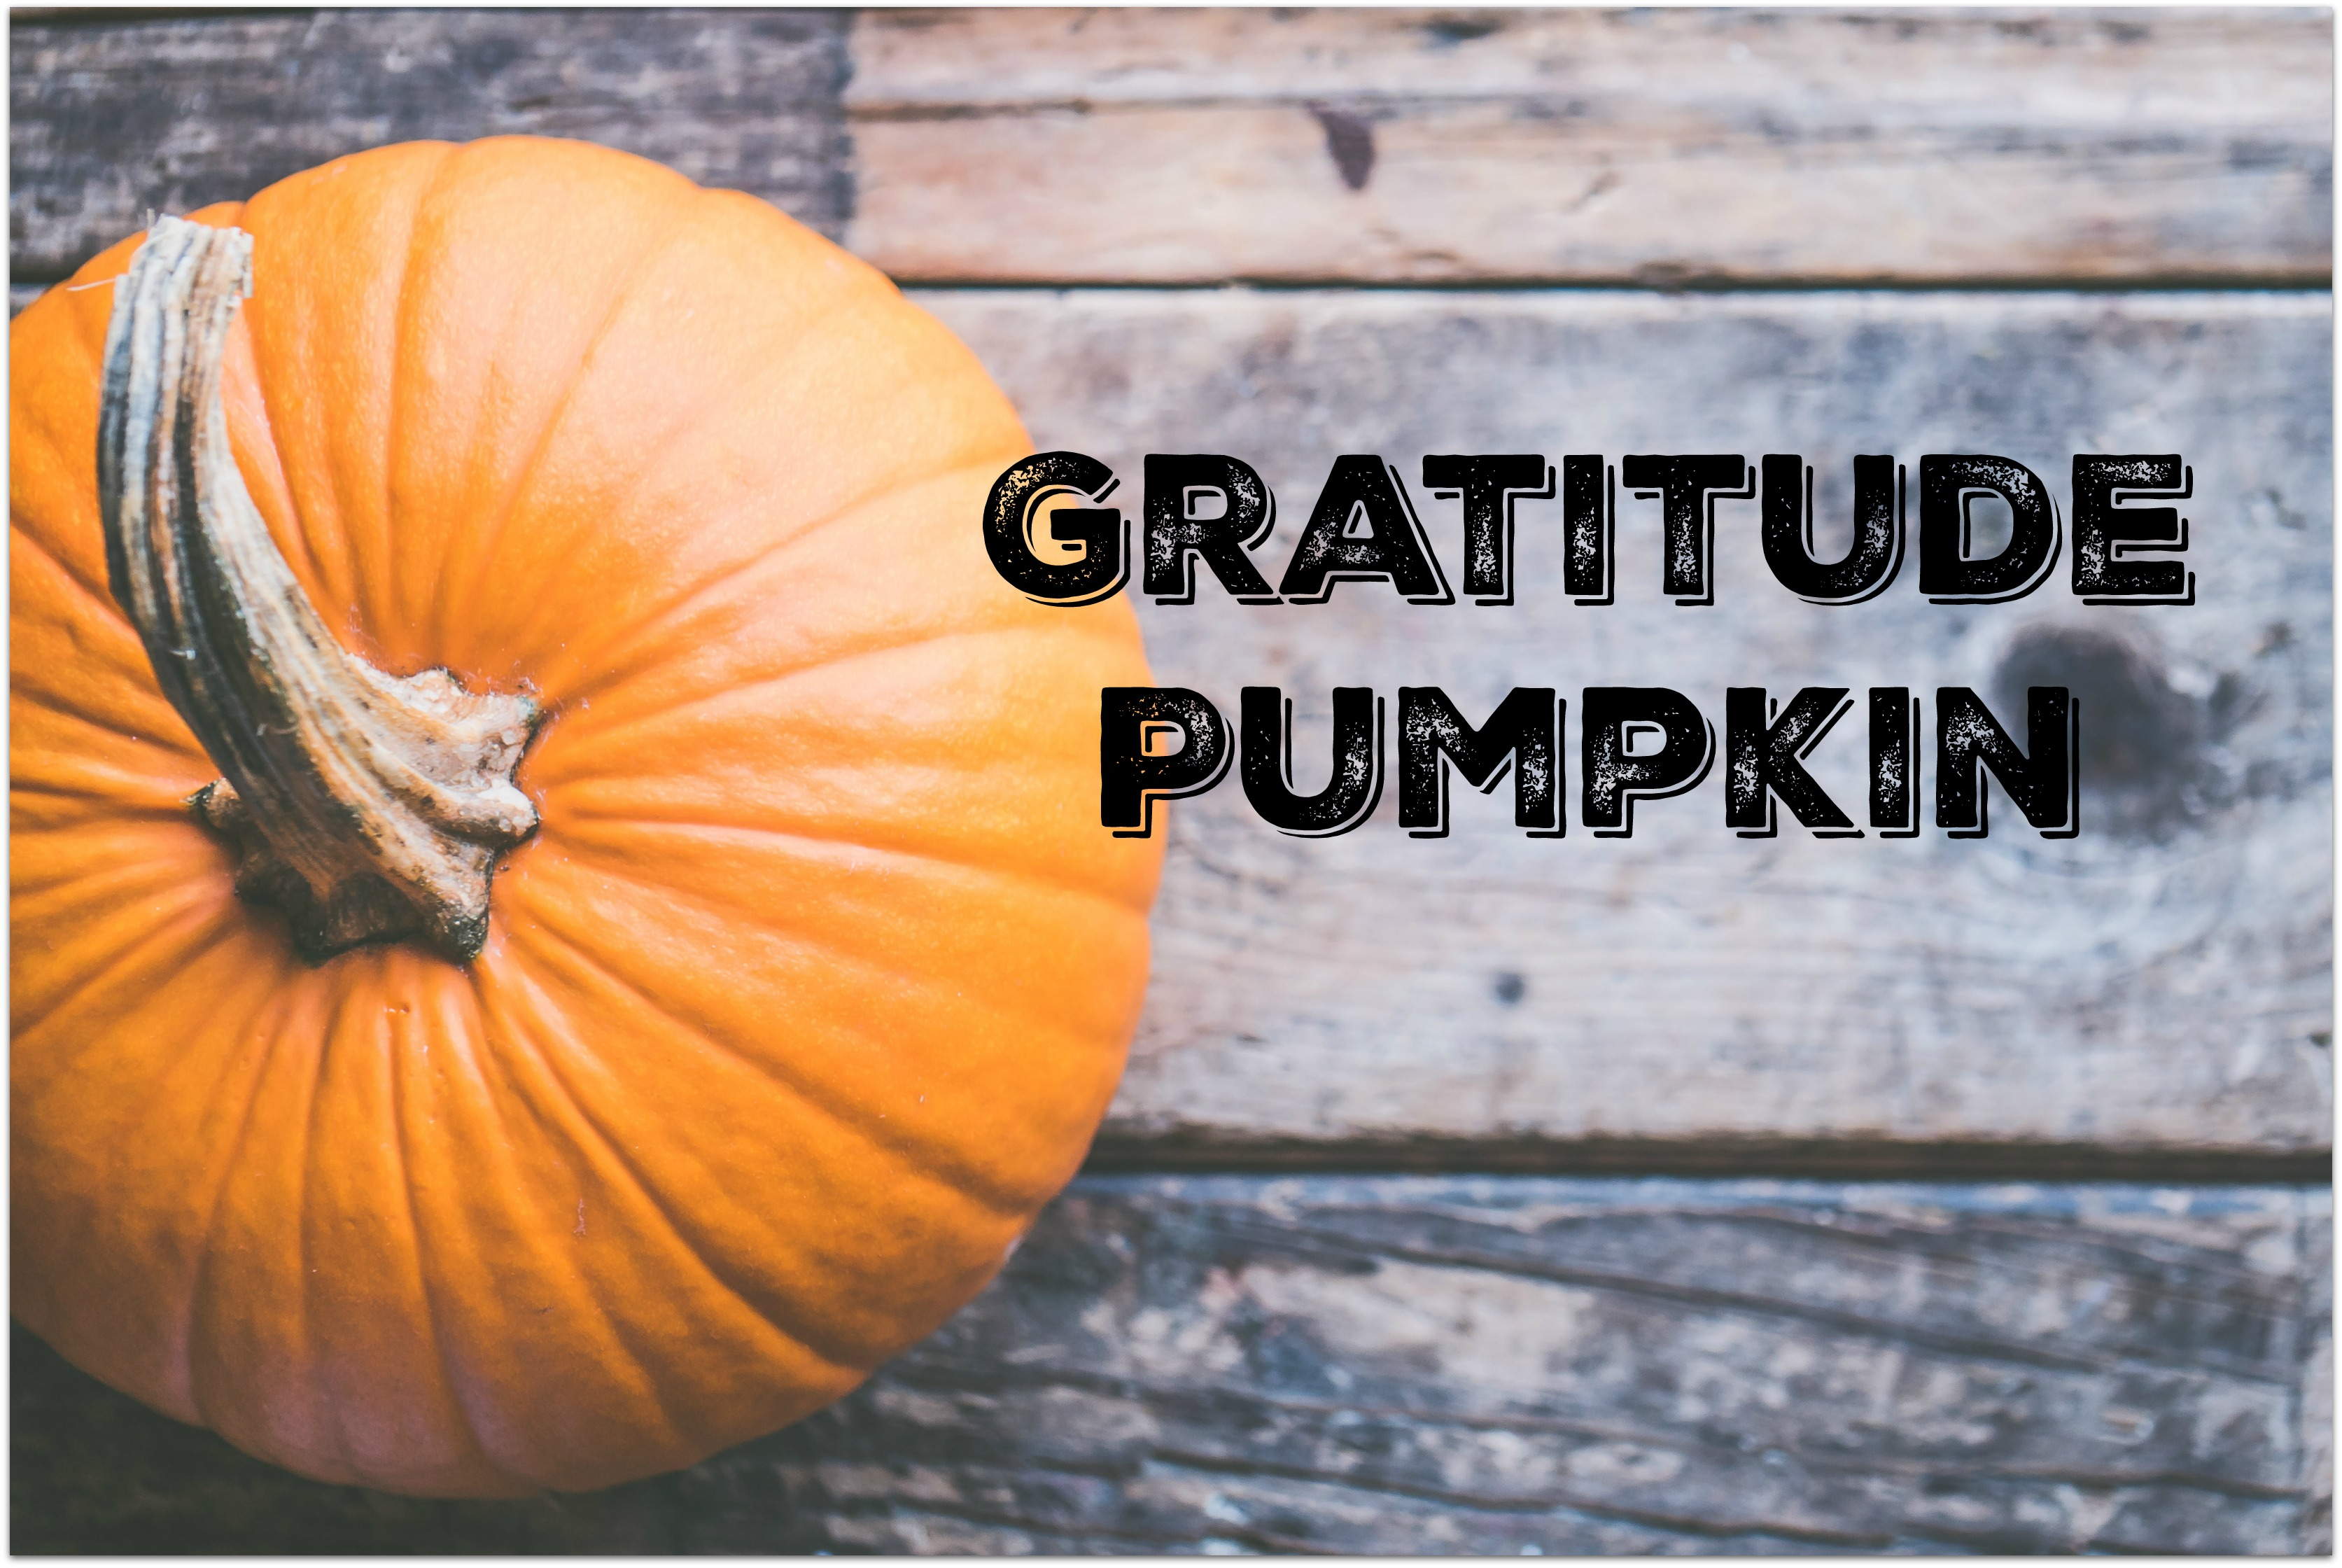 Pumpkin - 5 Ways to Keep Your Family Focused on Gratitude this Holiday